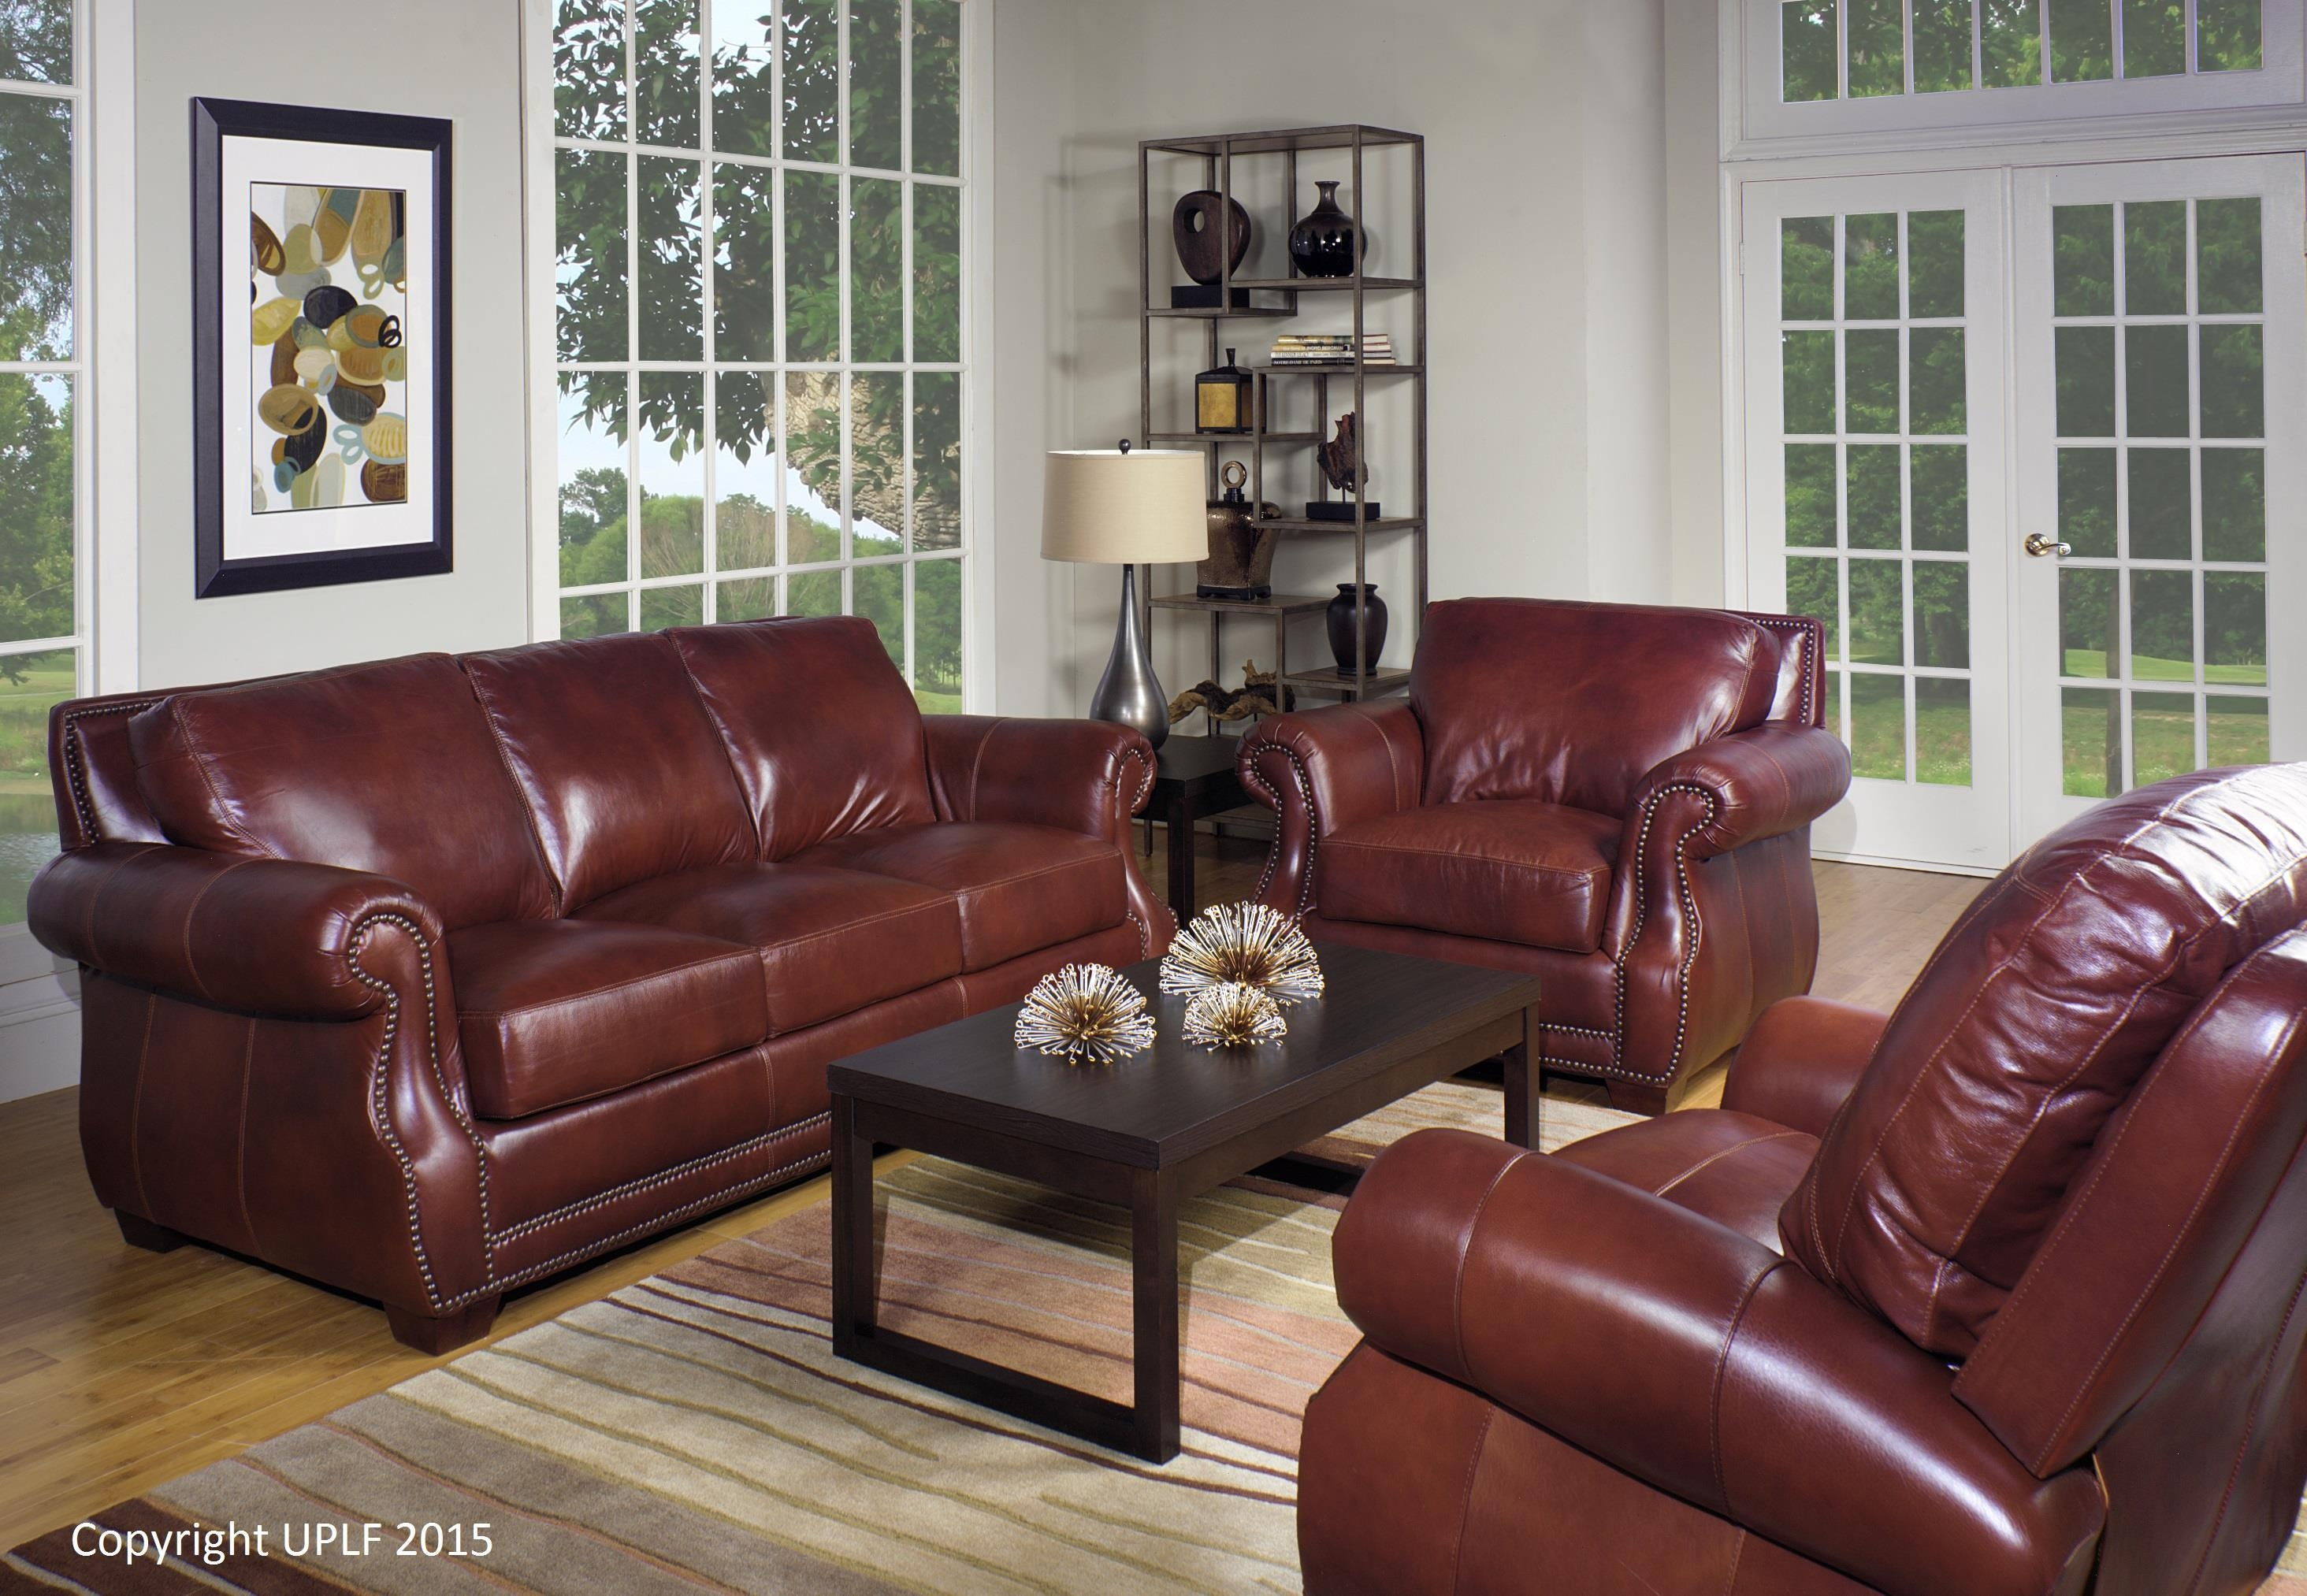 20 choices of brown leather sofas with nailhead trim for Traditional leather sofas furniture